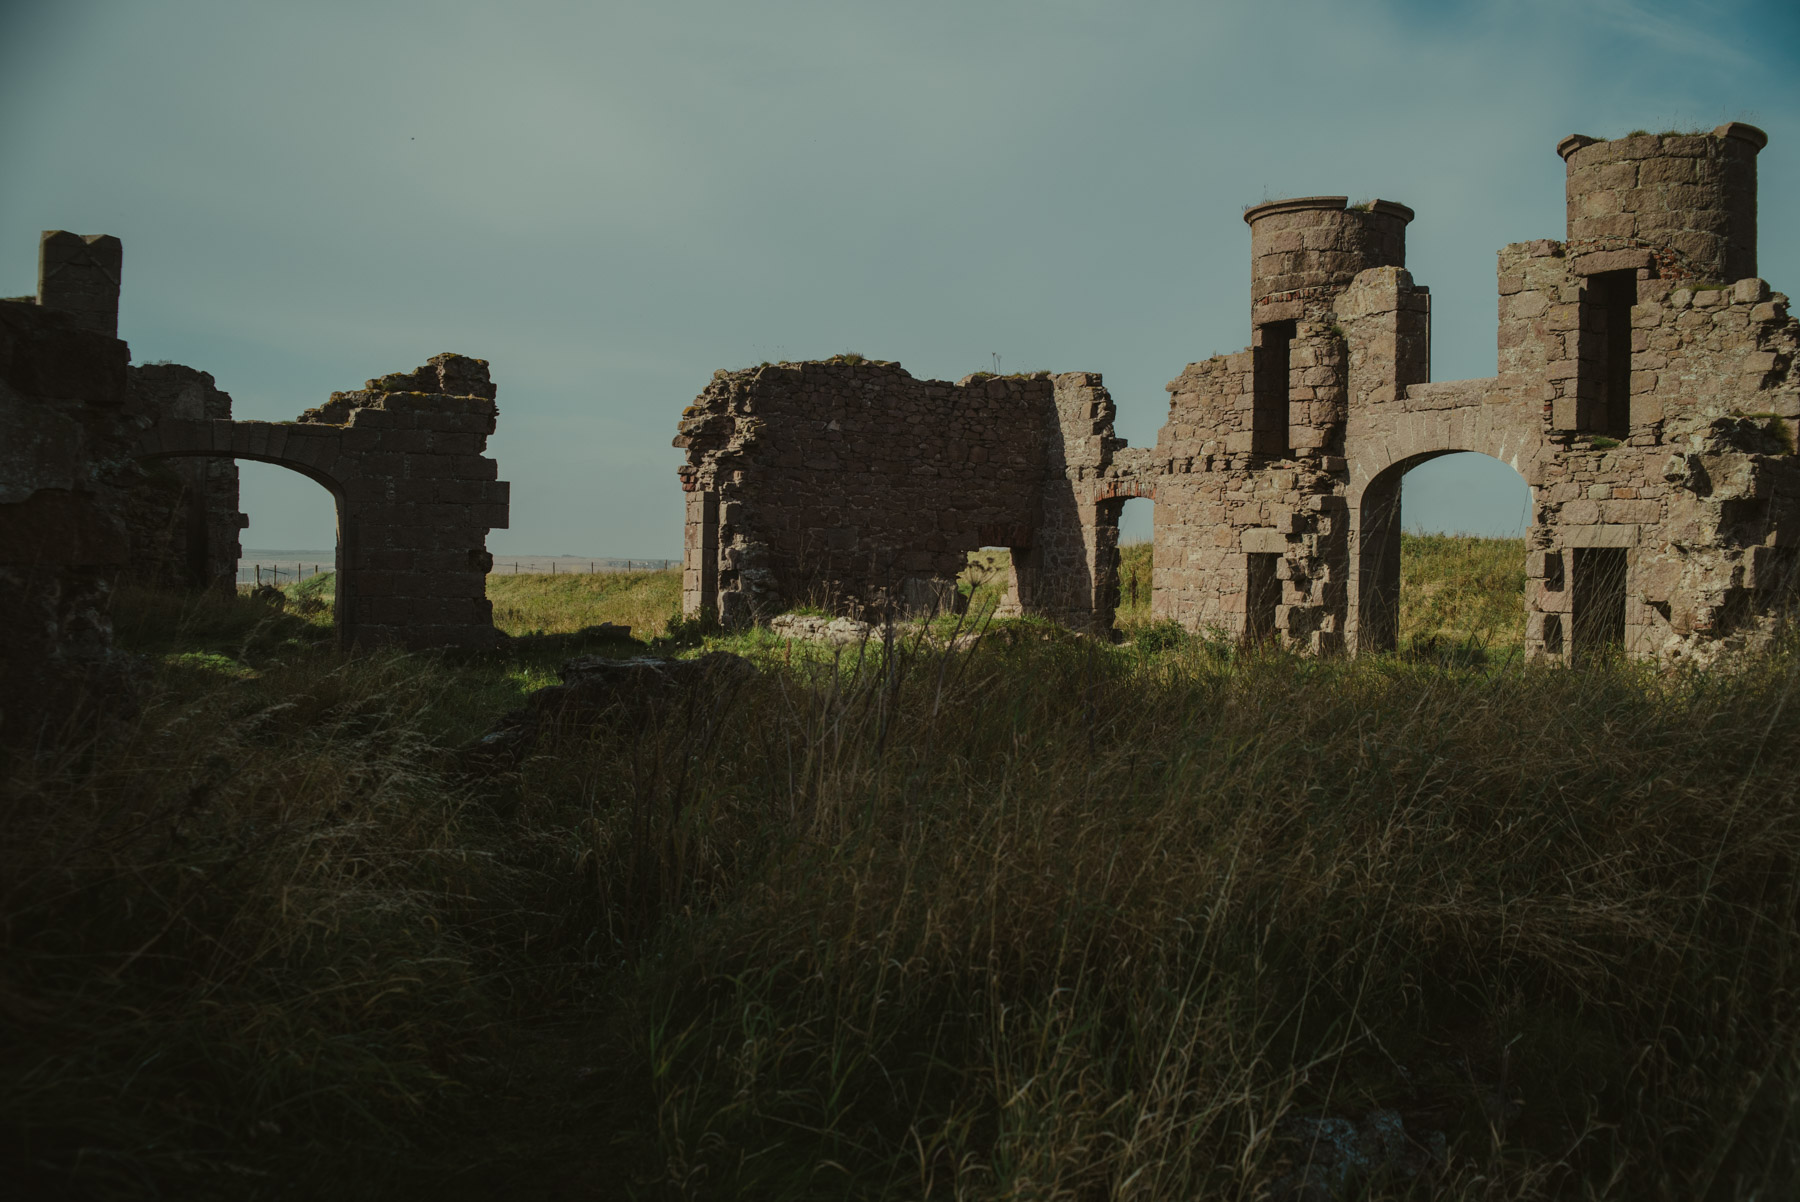 Ruins of a Scottish castle, rovine di un castello scozzese